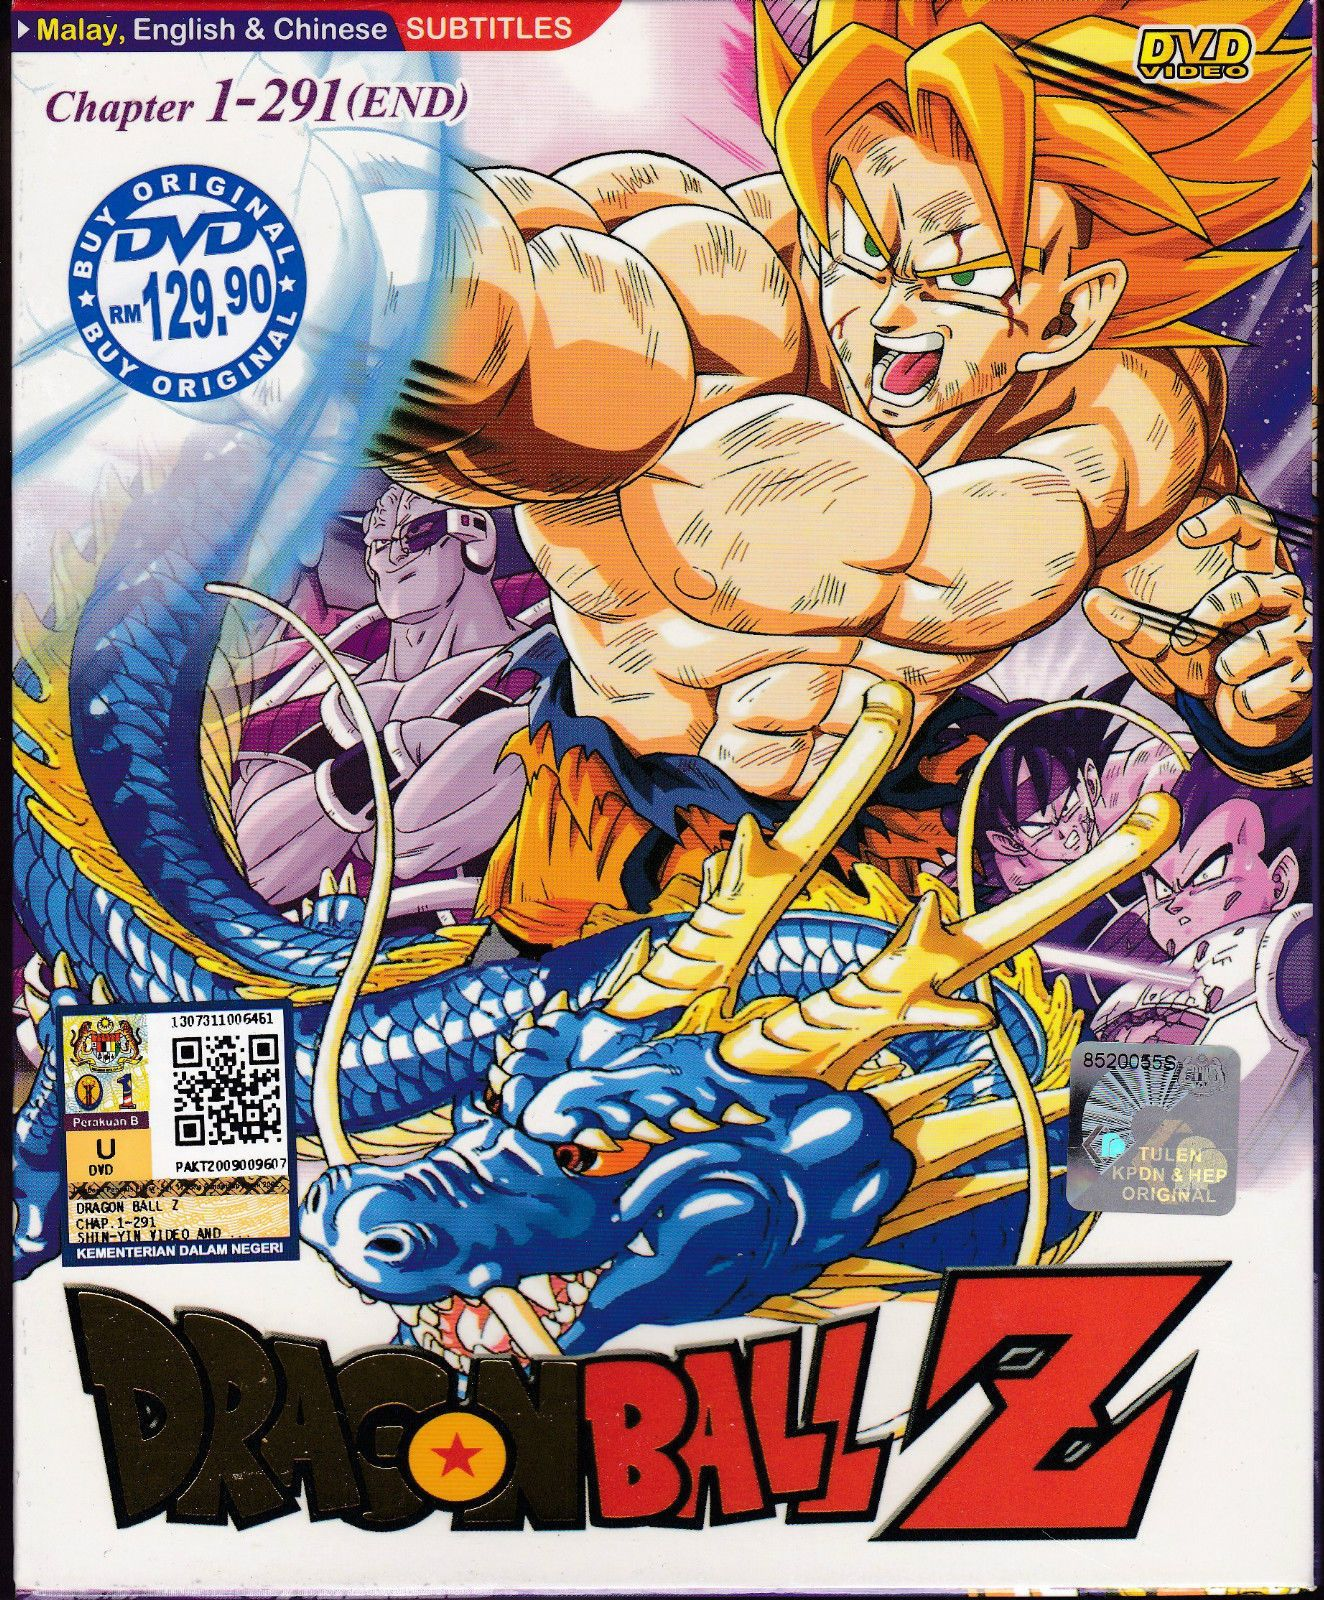 Dvd anime dragon ball z chapter 1291 end complete series